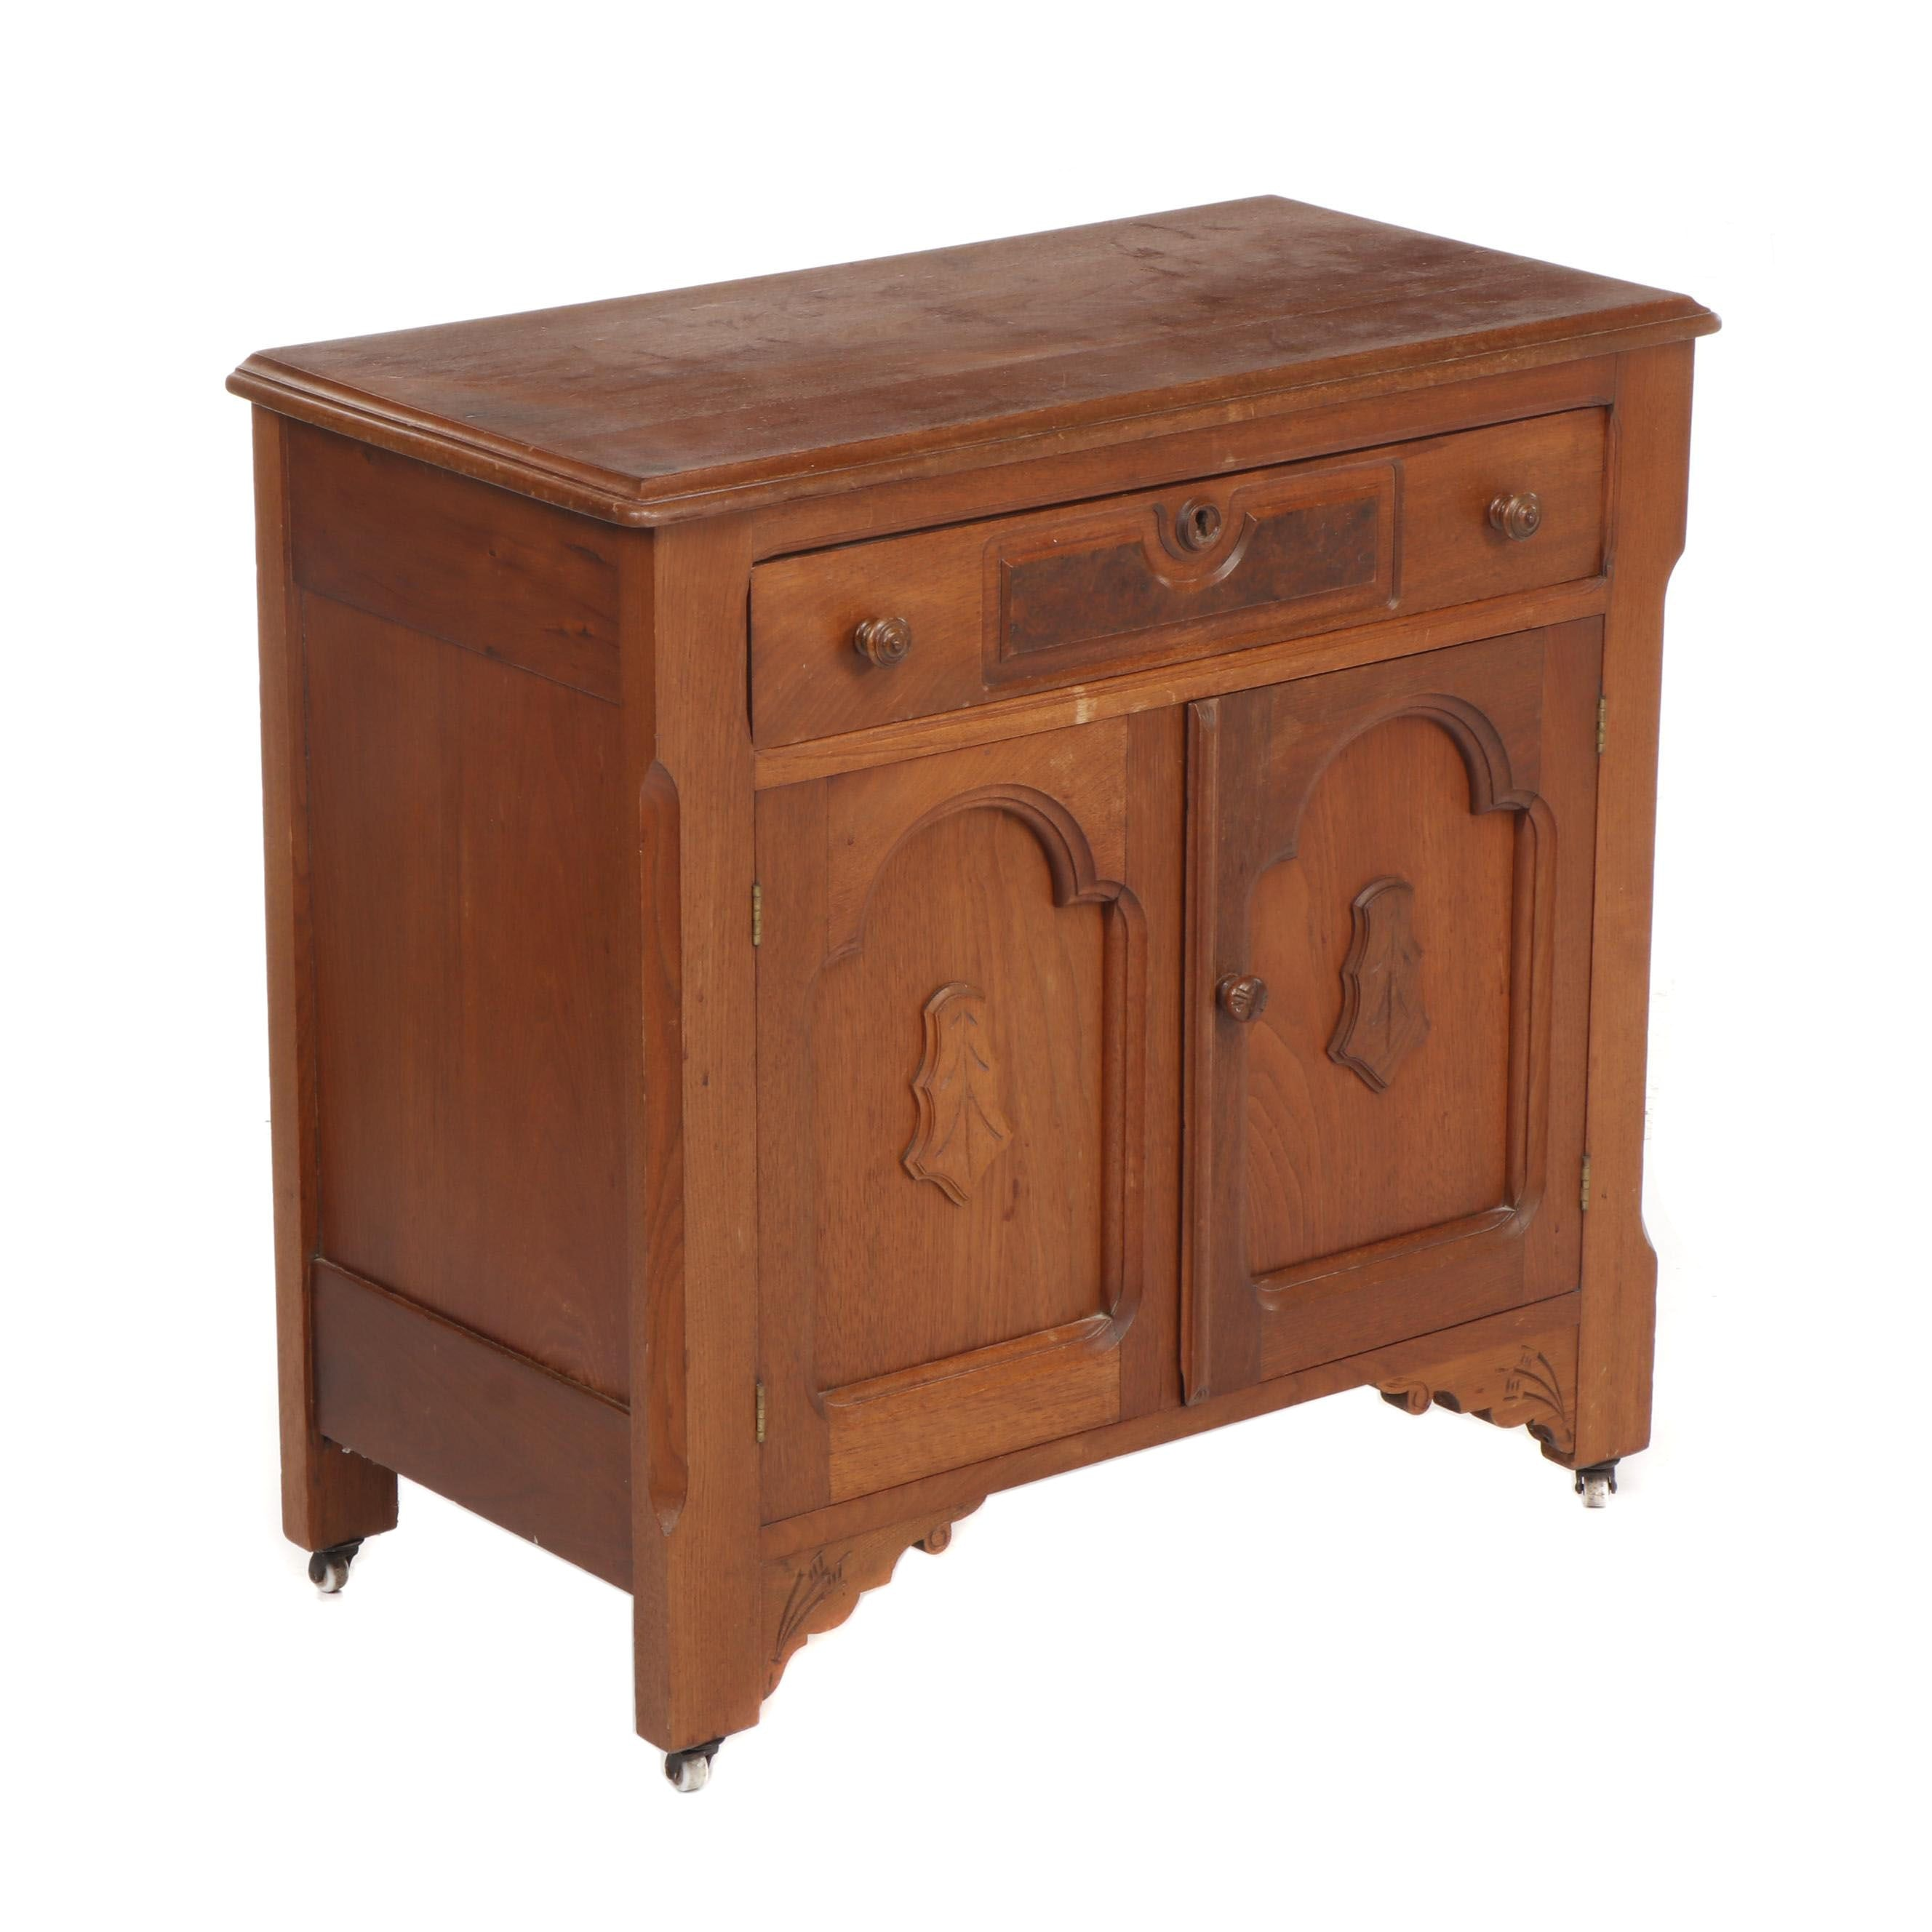 Colonial Style Hardwood Cabinet on Casters